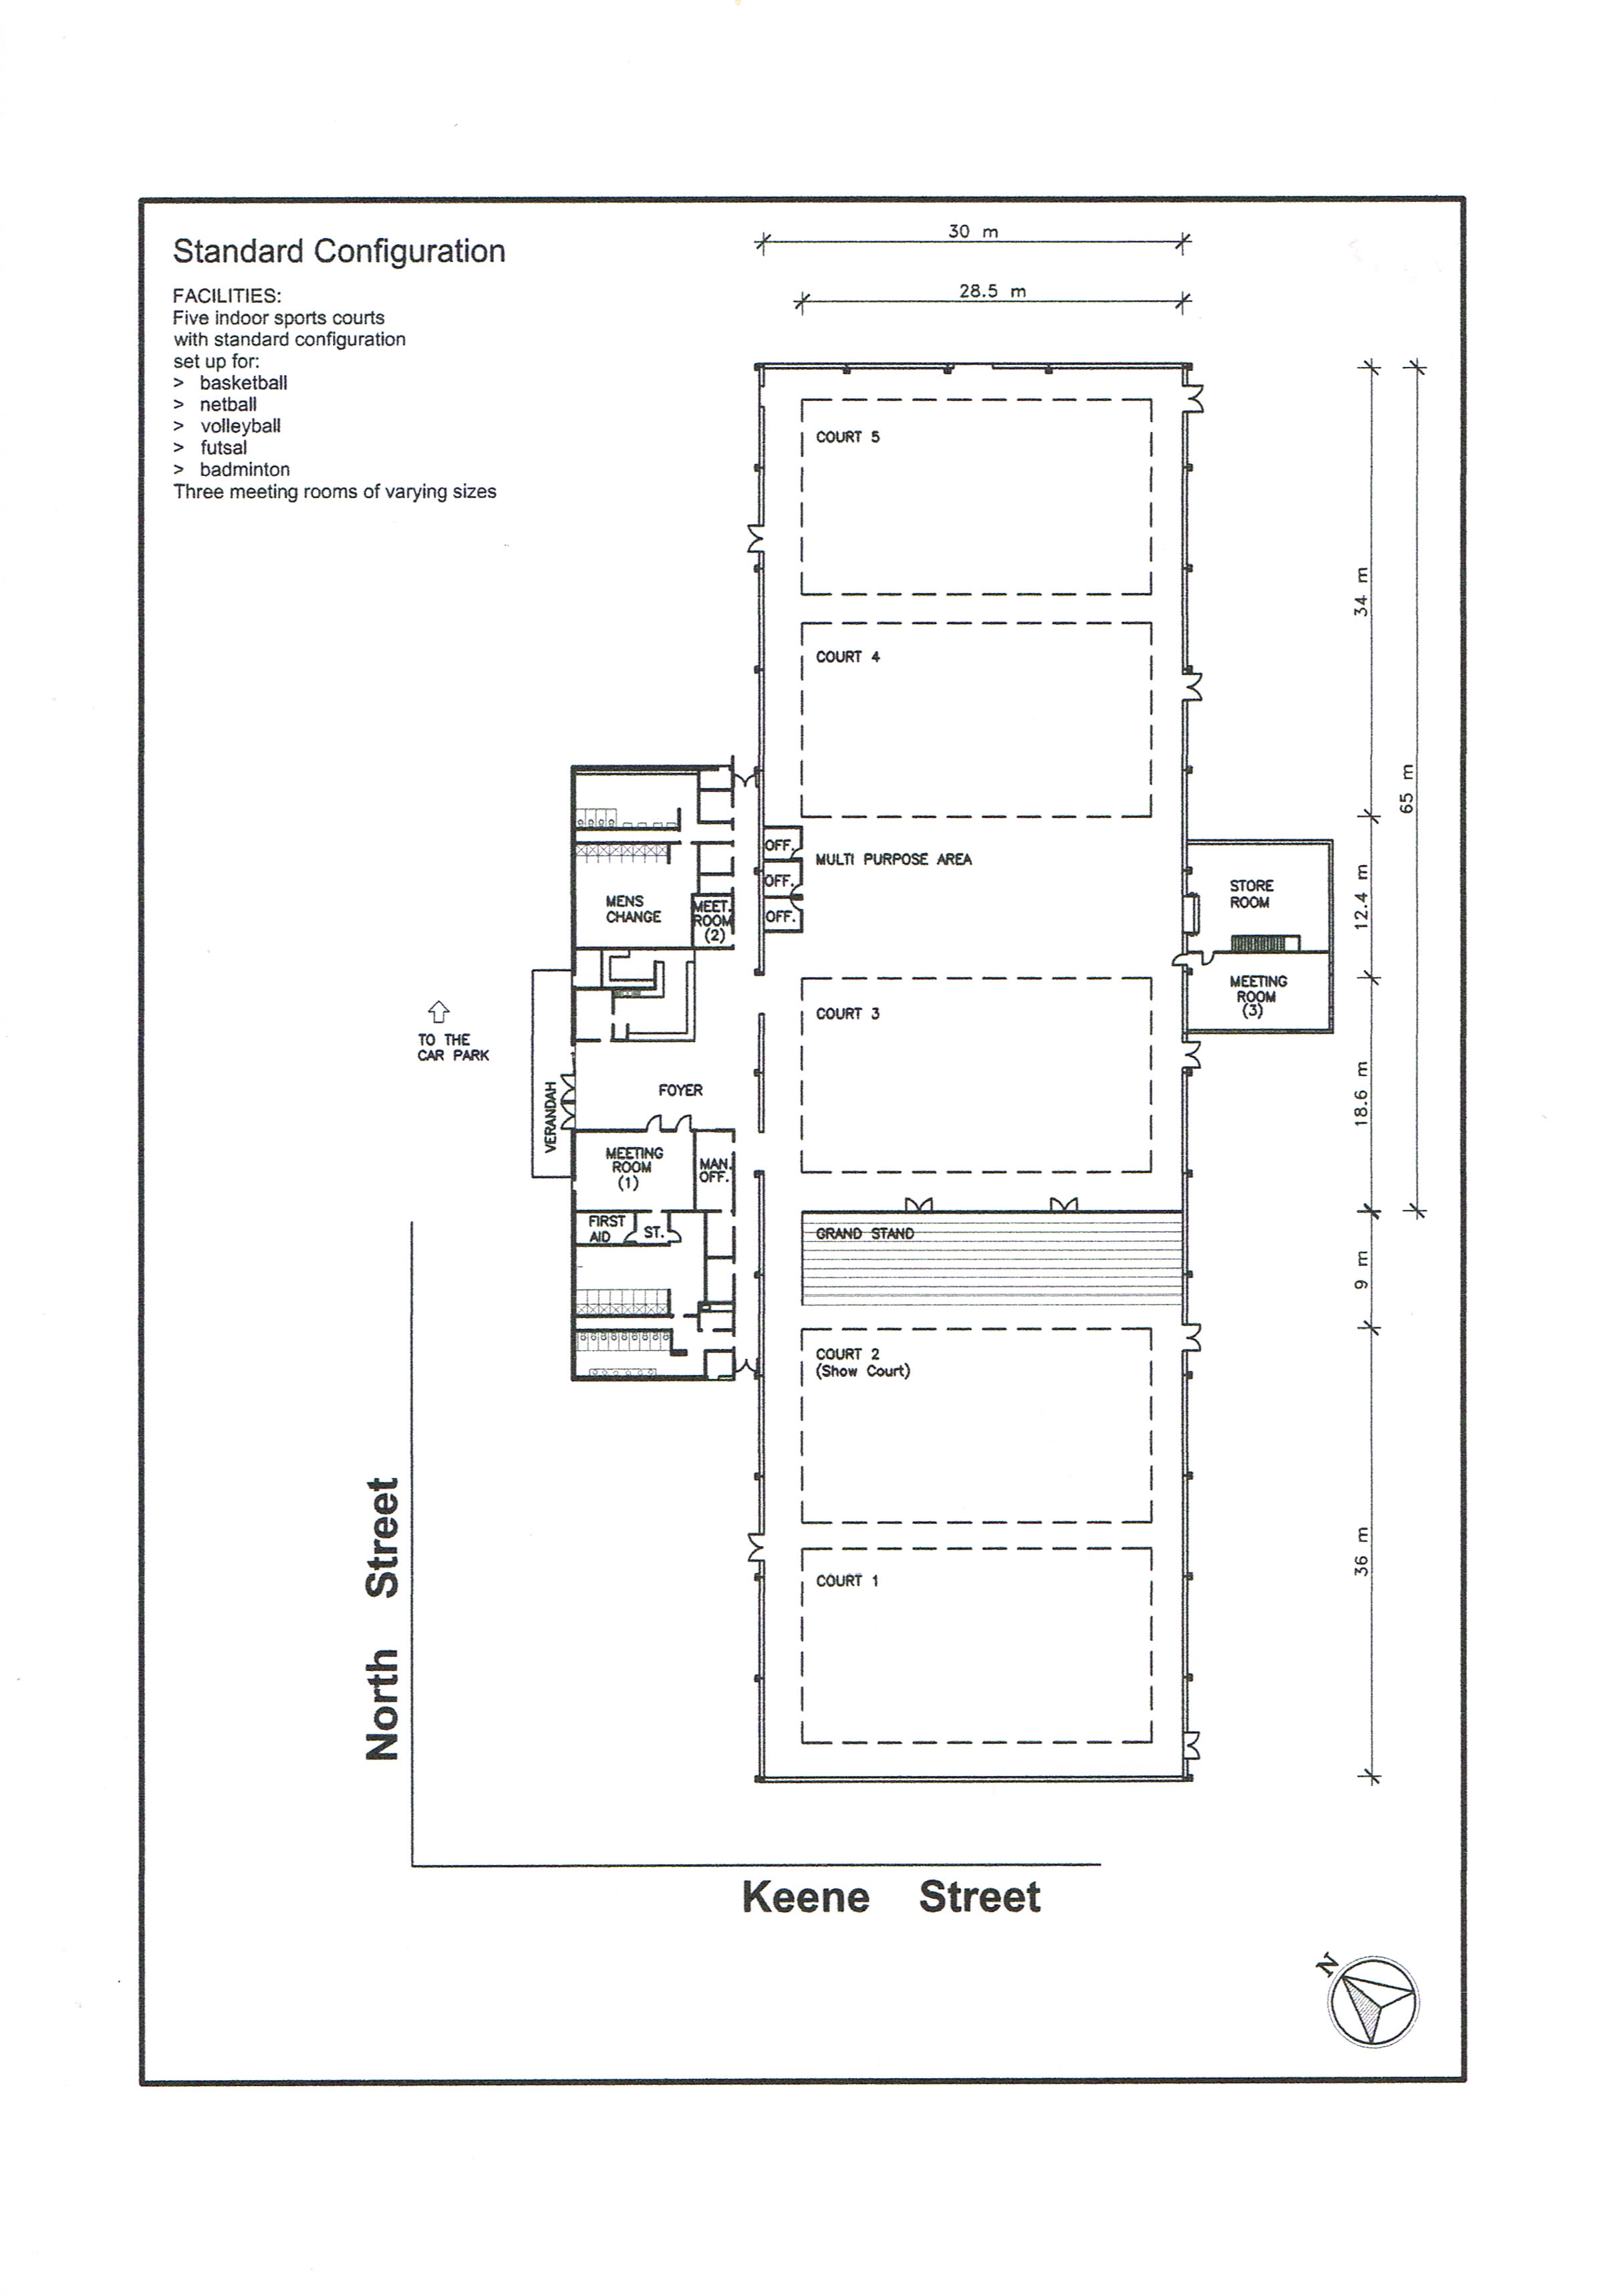 floor plan of the sports centre